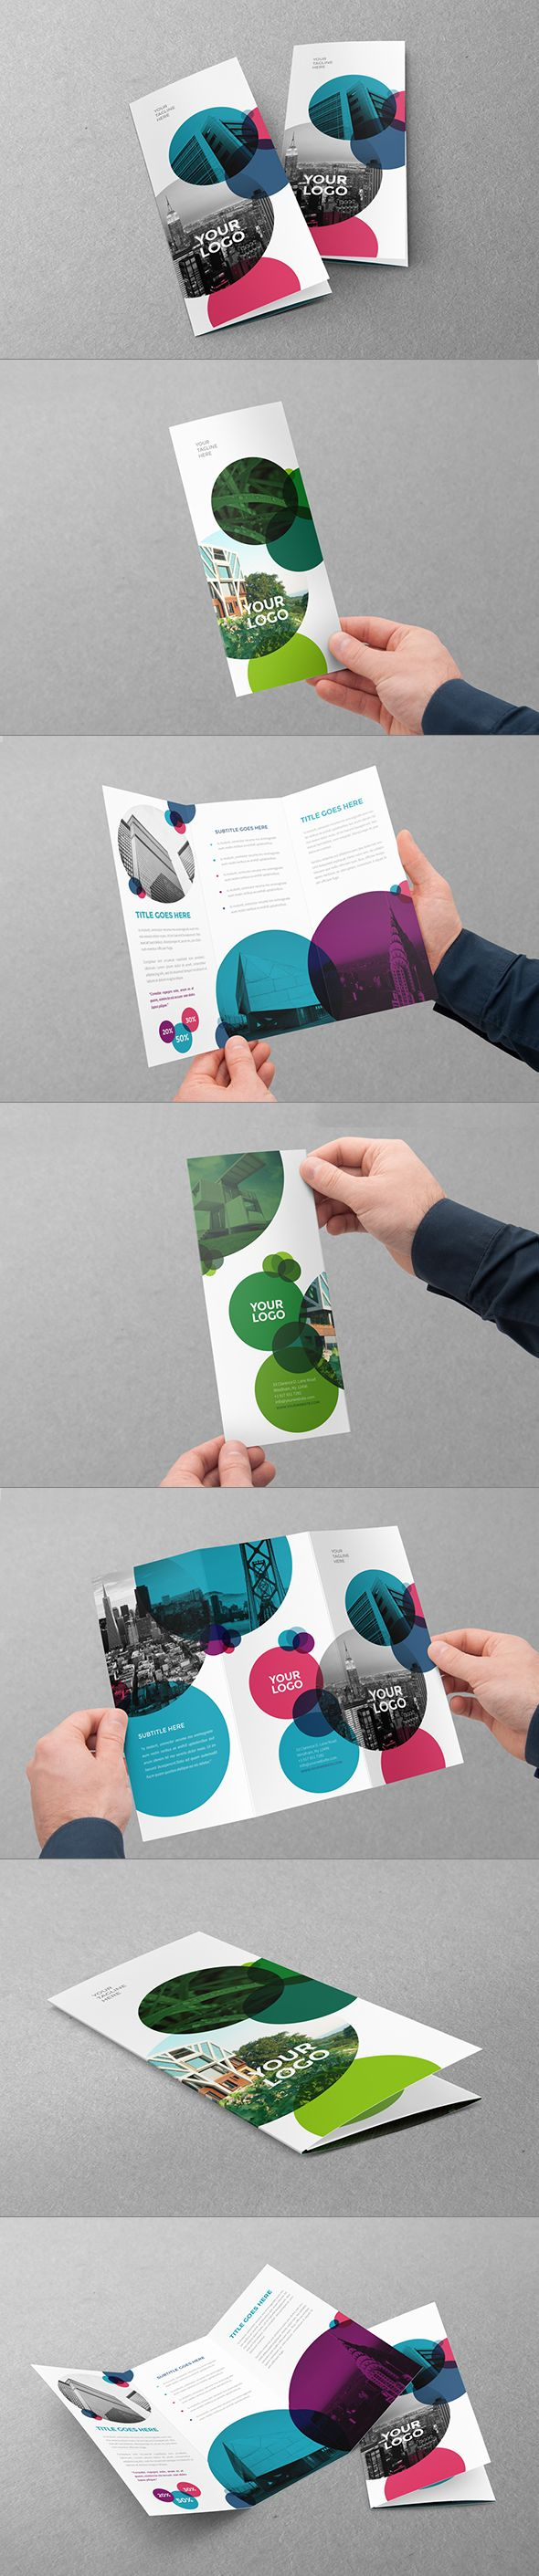 Cool Ecologic Trifold. Download here: http://graphicriver.net/item/cool-ecologic-circles-trifold/10880089?ref=abradesign #trifold #brochure #design